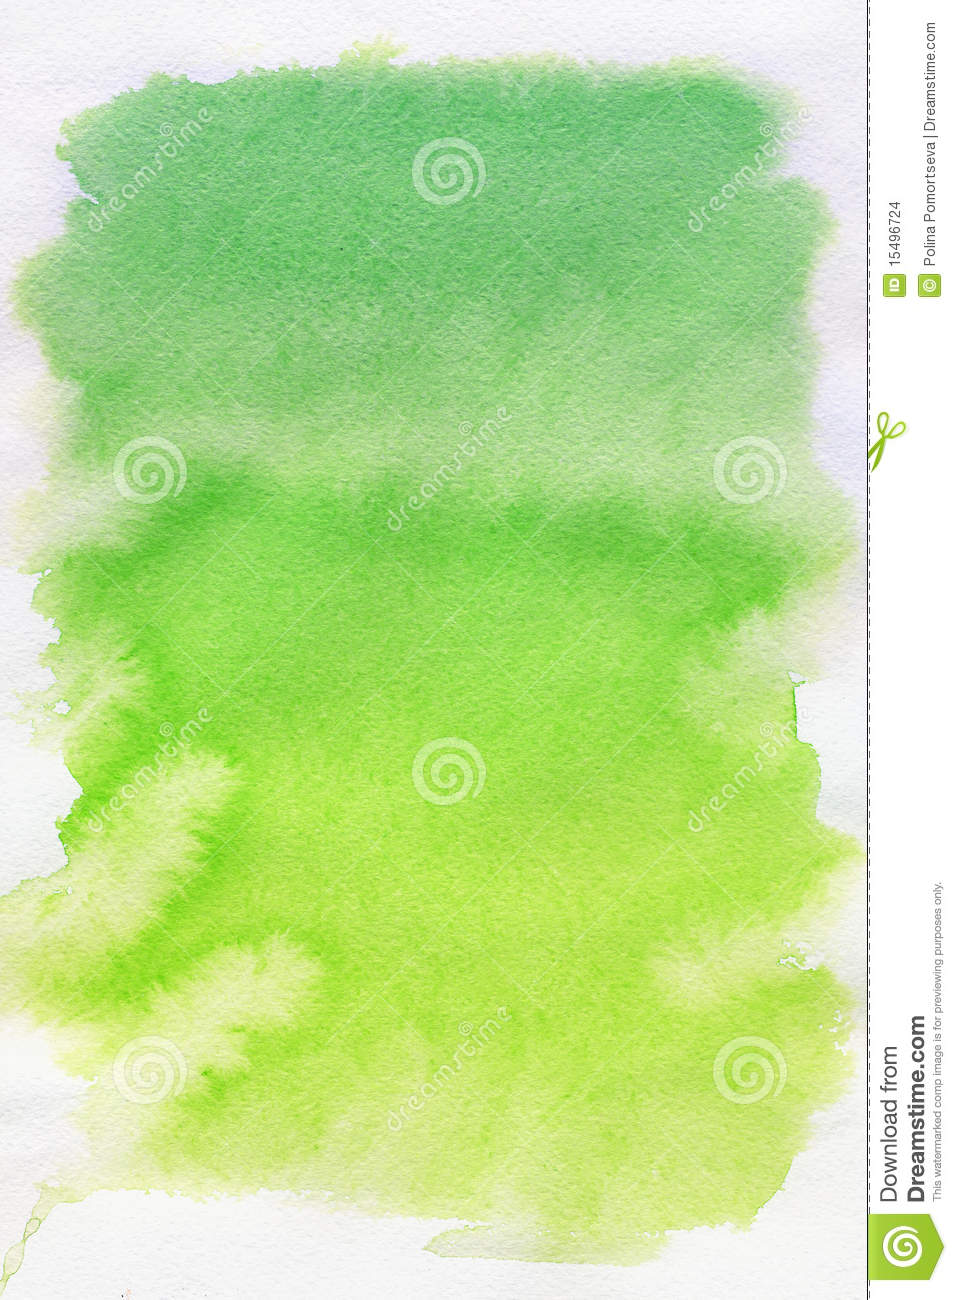 Green spot, watercolor abstract background